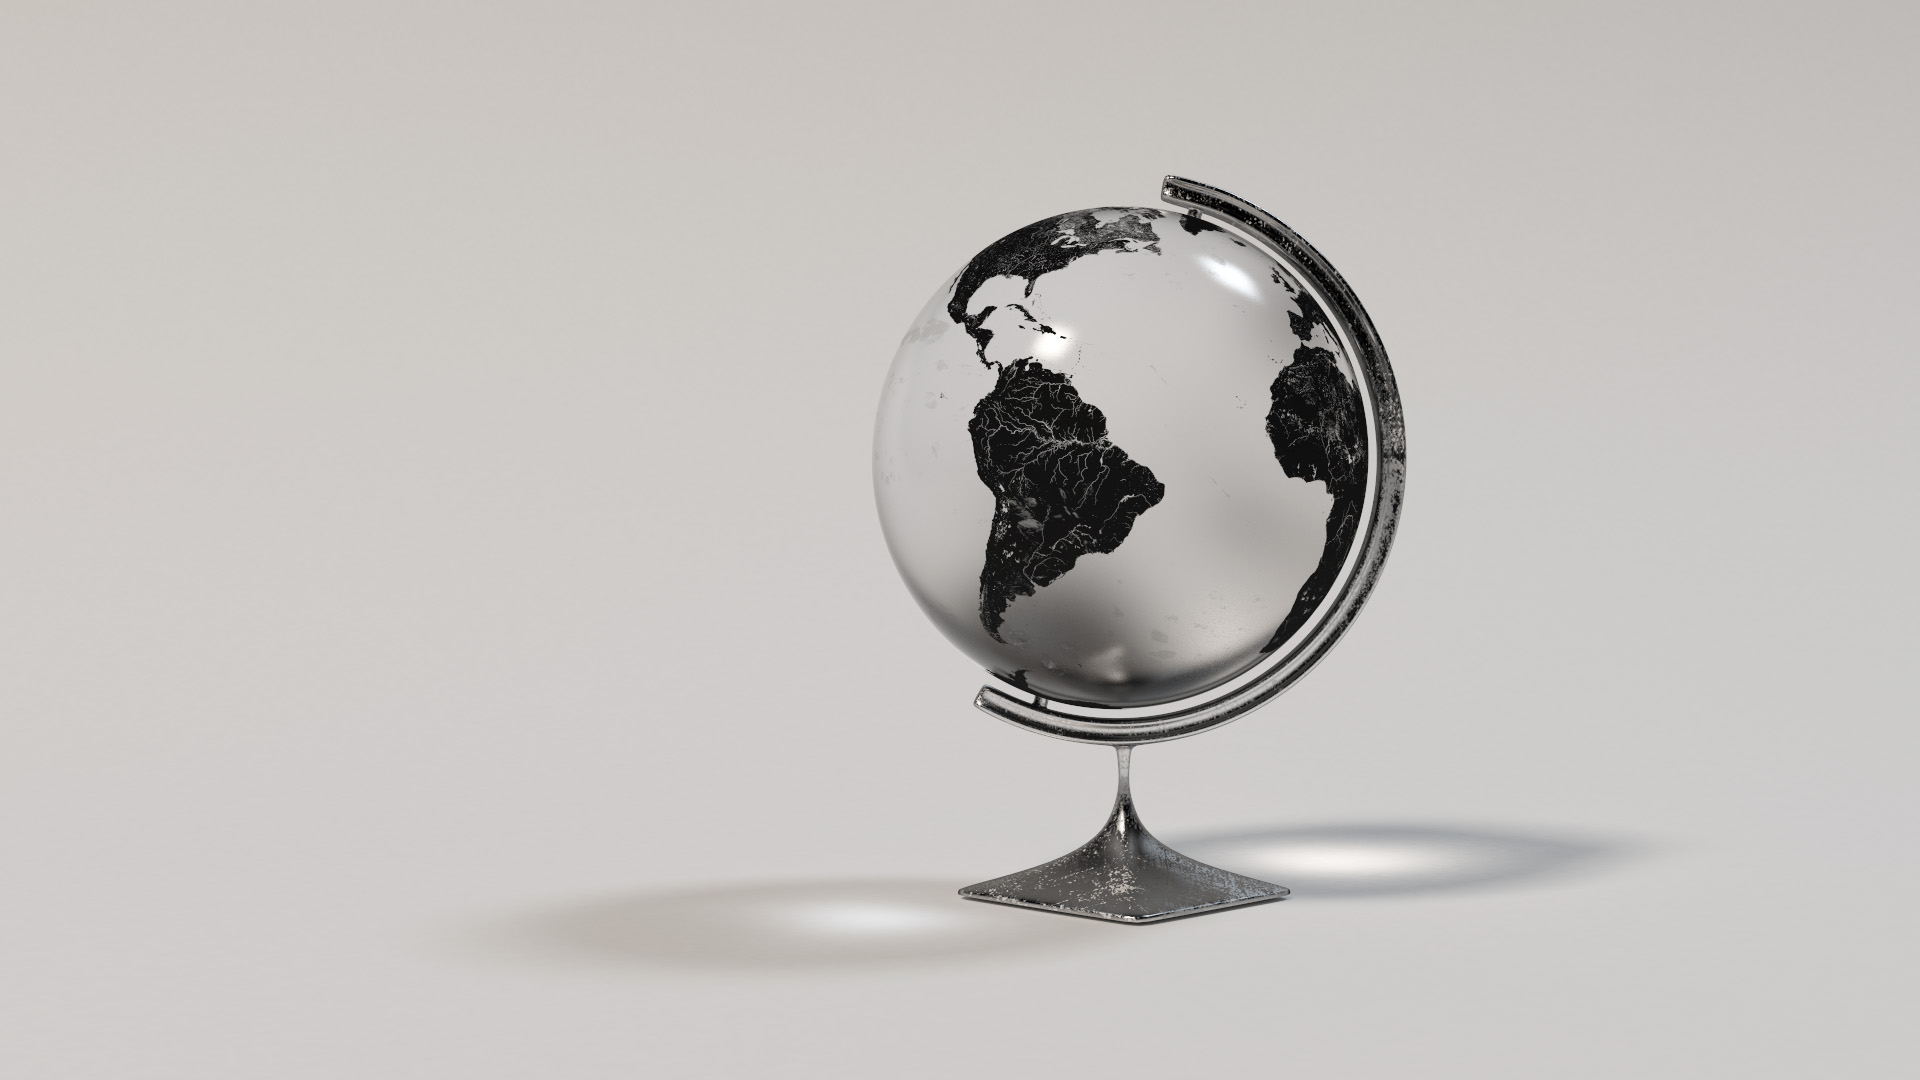 Glass globe using Takua's layered BSDF system. The globe has a base ground glass layer, a mirror layer for continents, and a dirt/fingerprints layer for additional detail. Rendered using VCM.